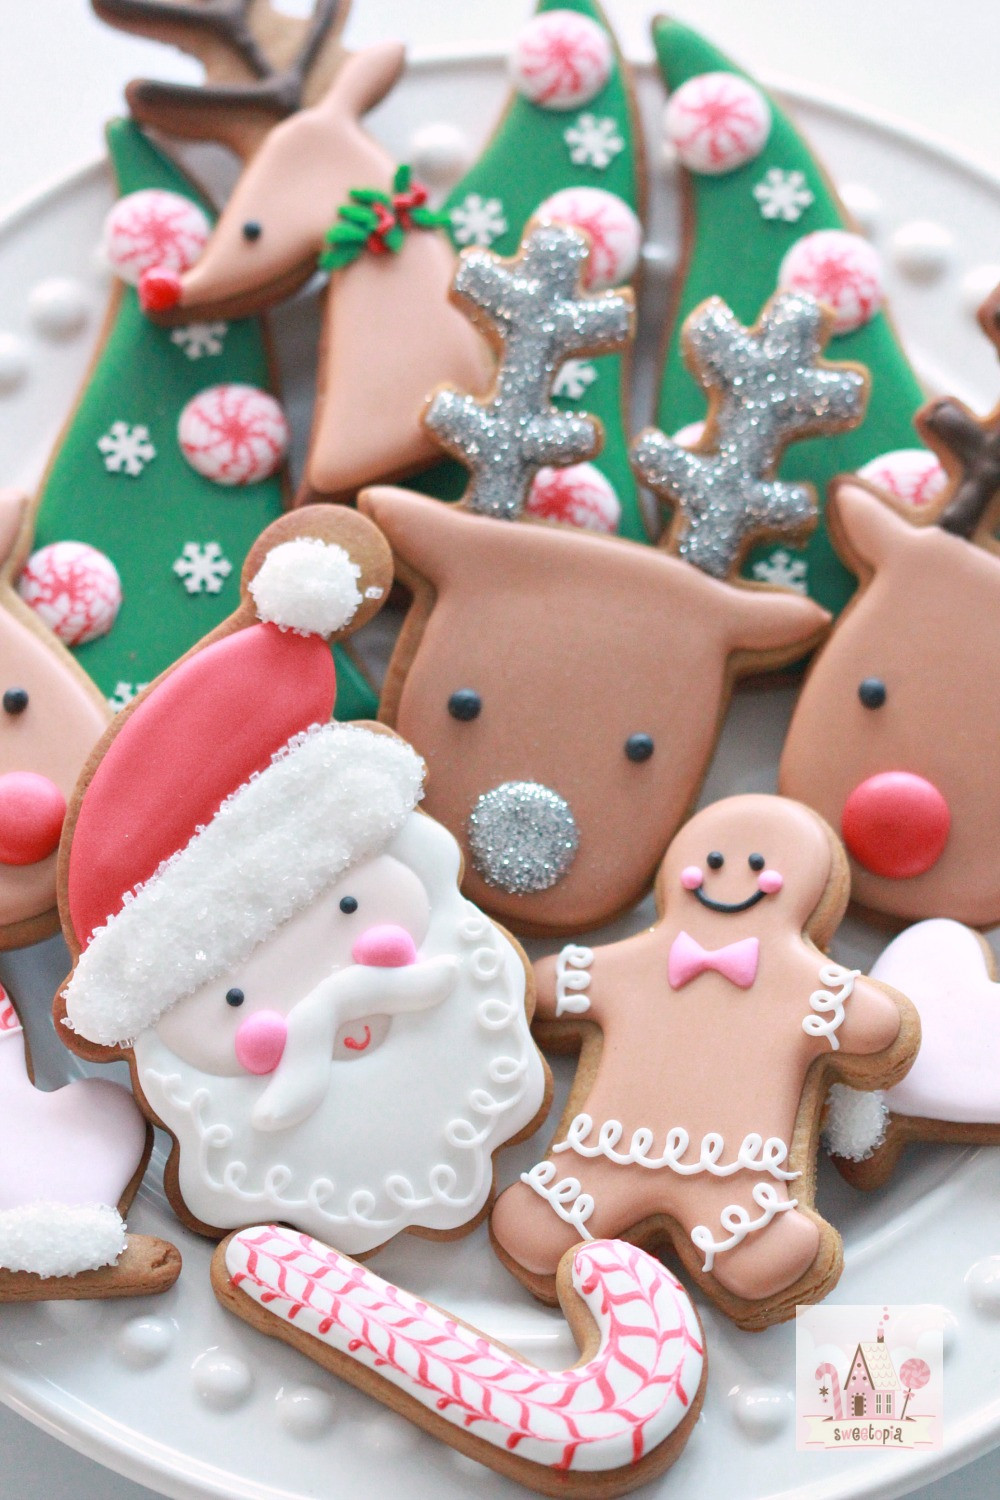 Christmas Cookie Icing  Video How to Decorate Christmas Cookies Simple Designs